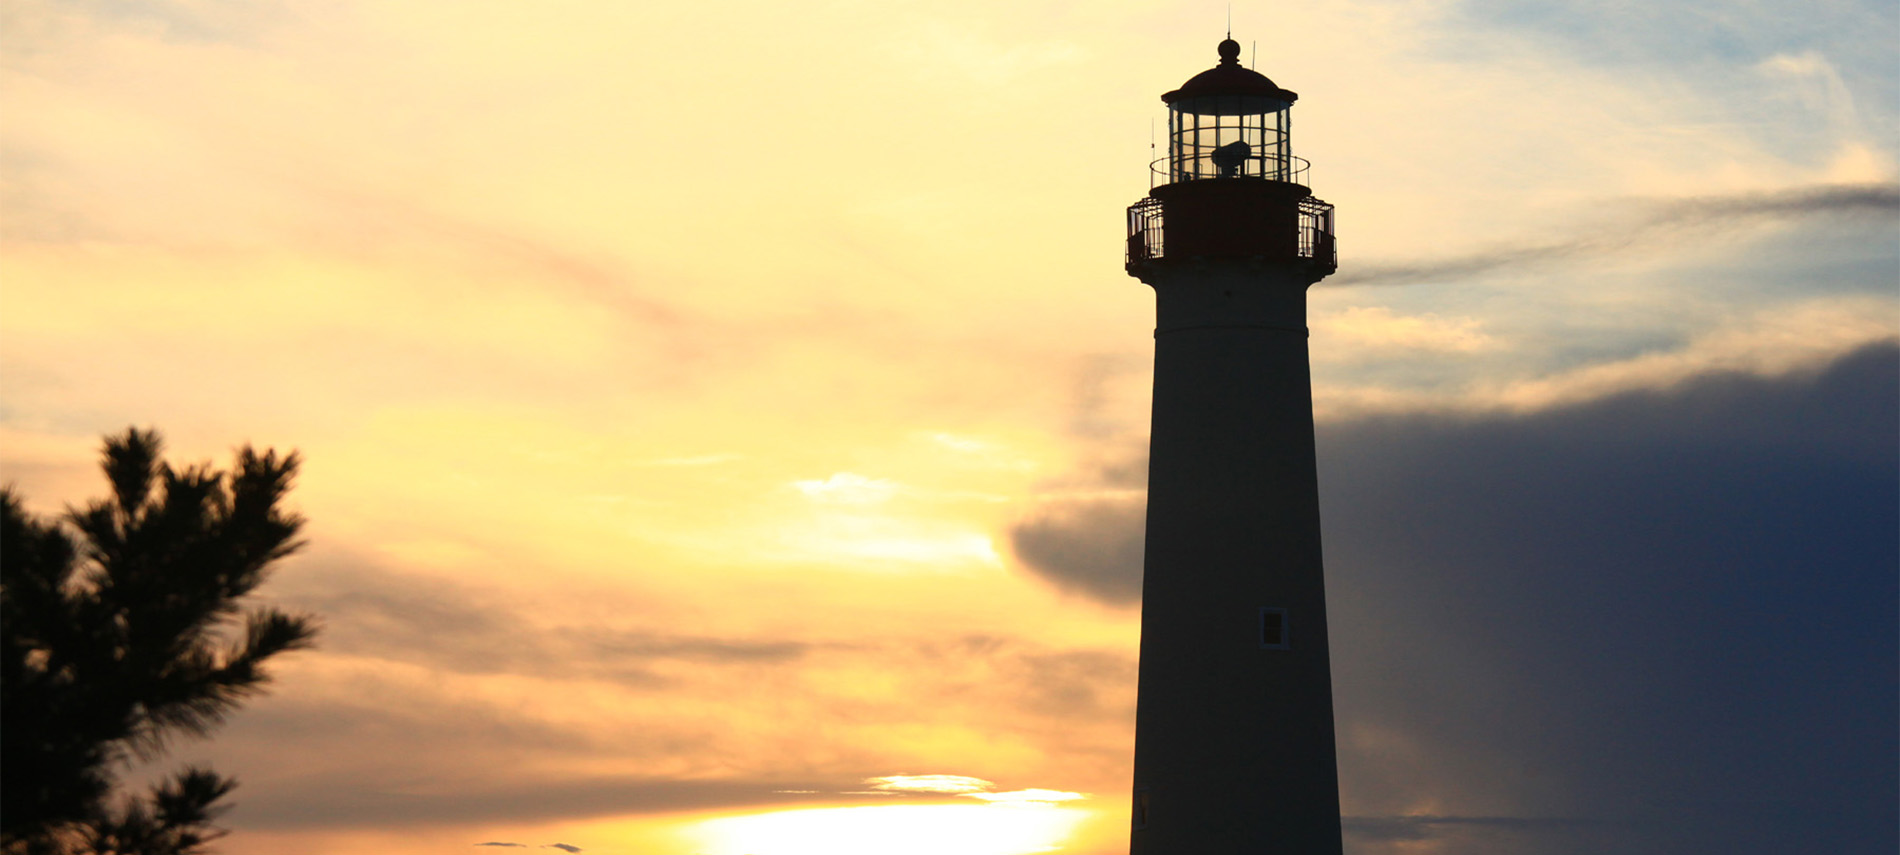 A tall lighthouse cast into shadow by the sunset.